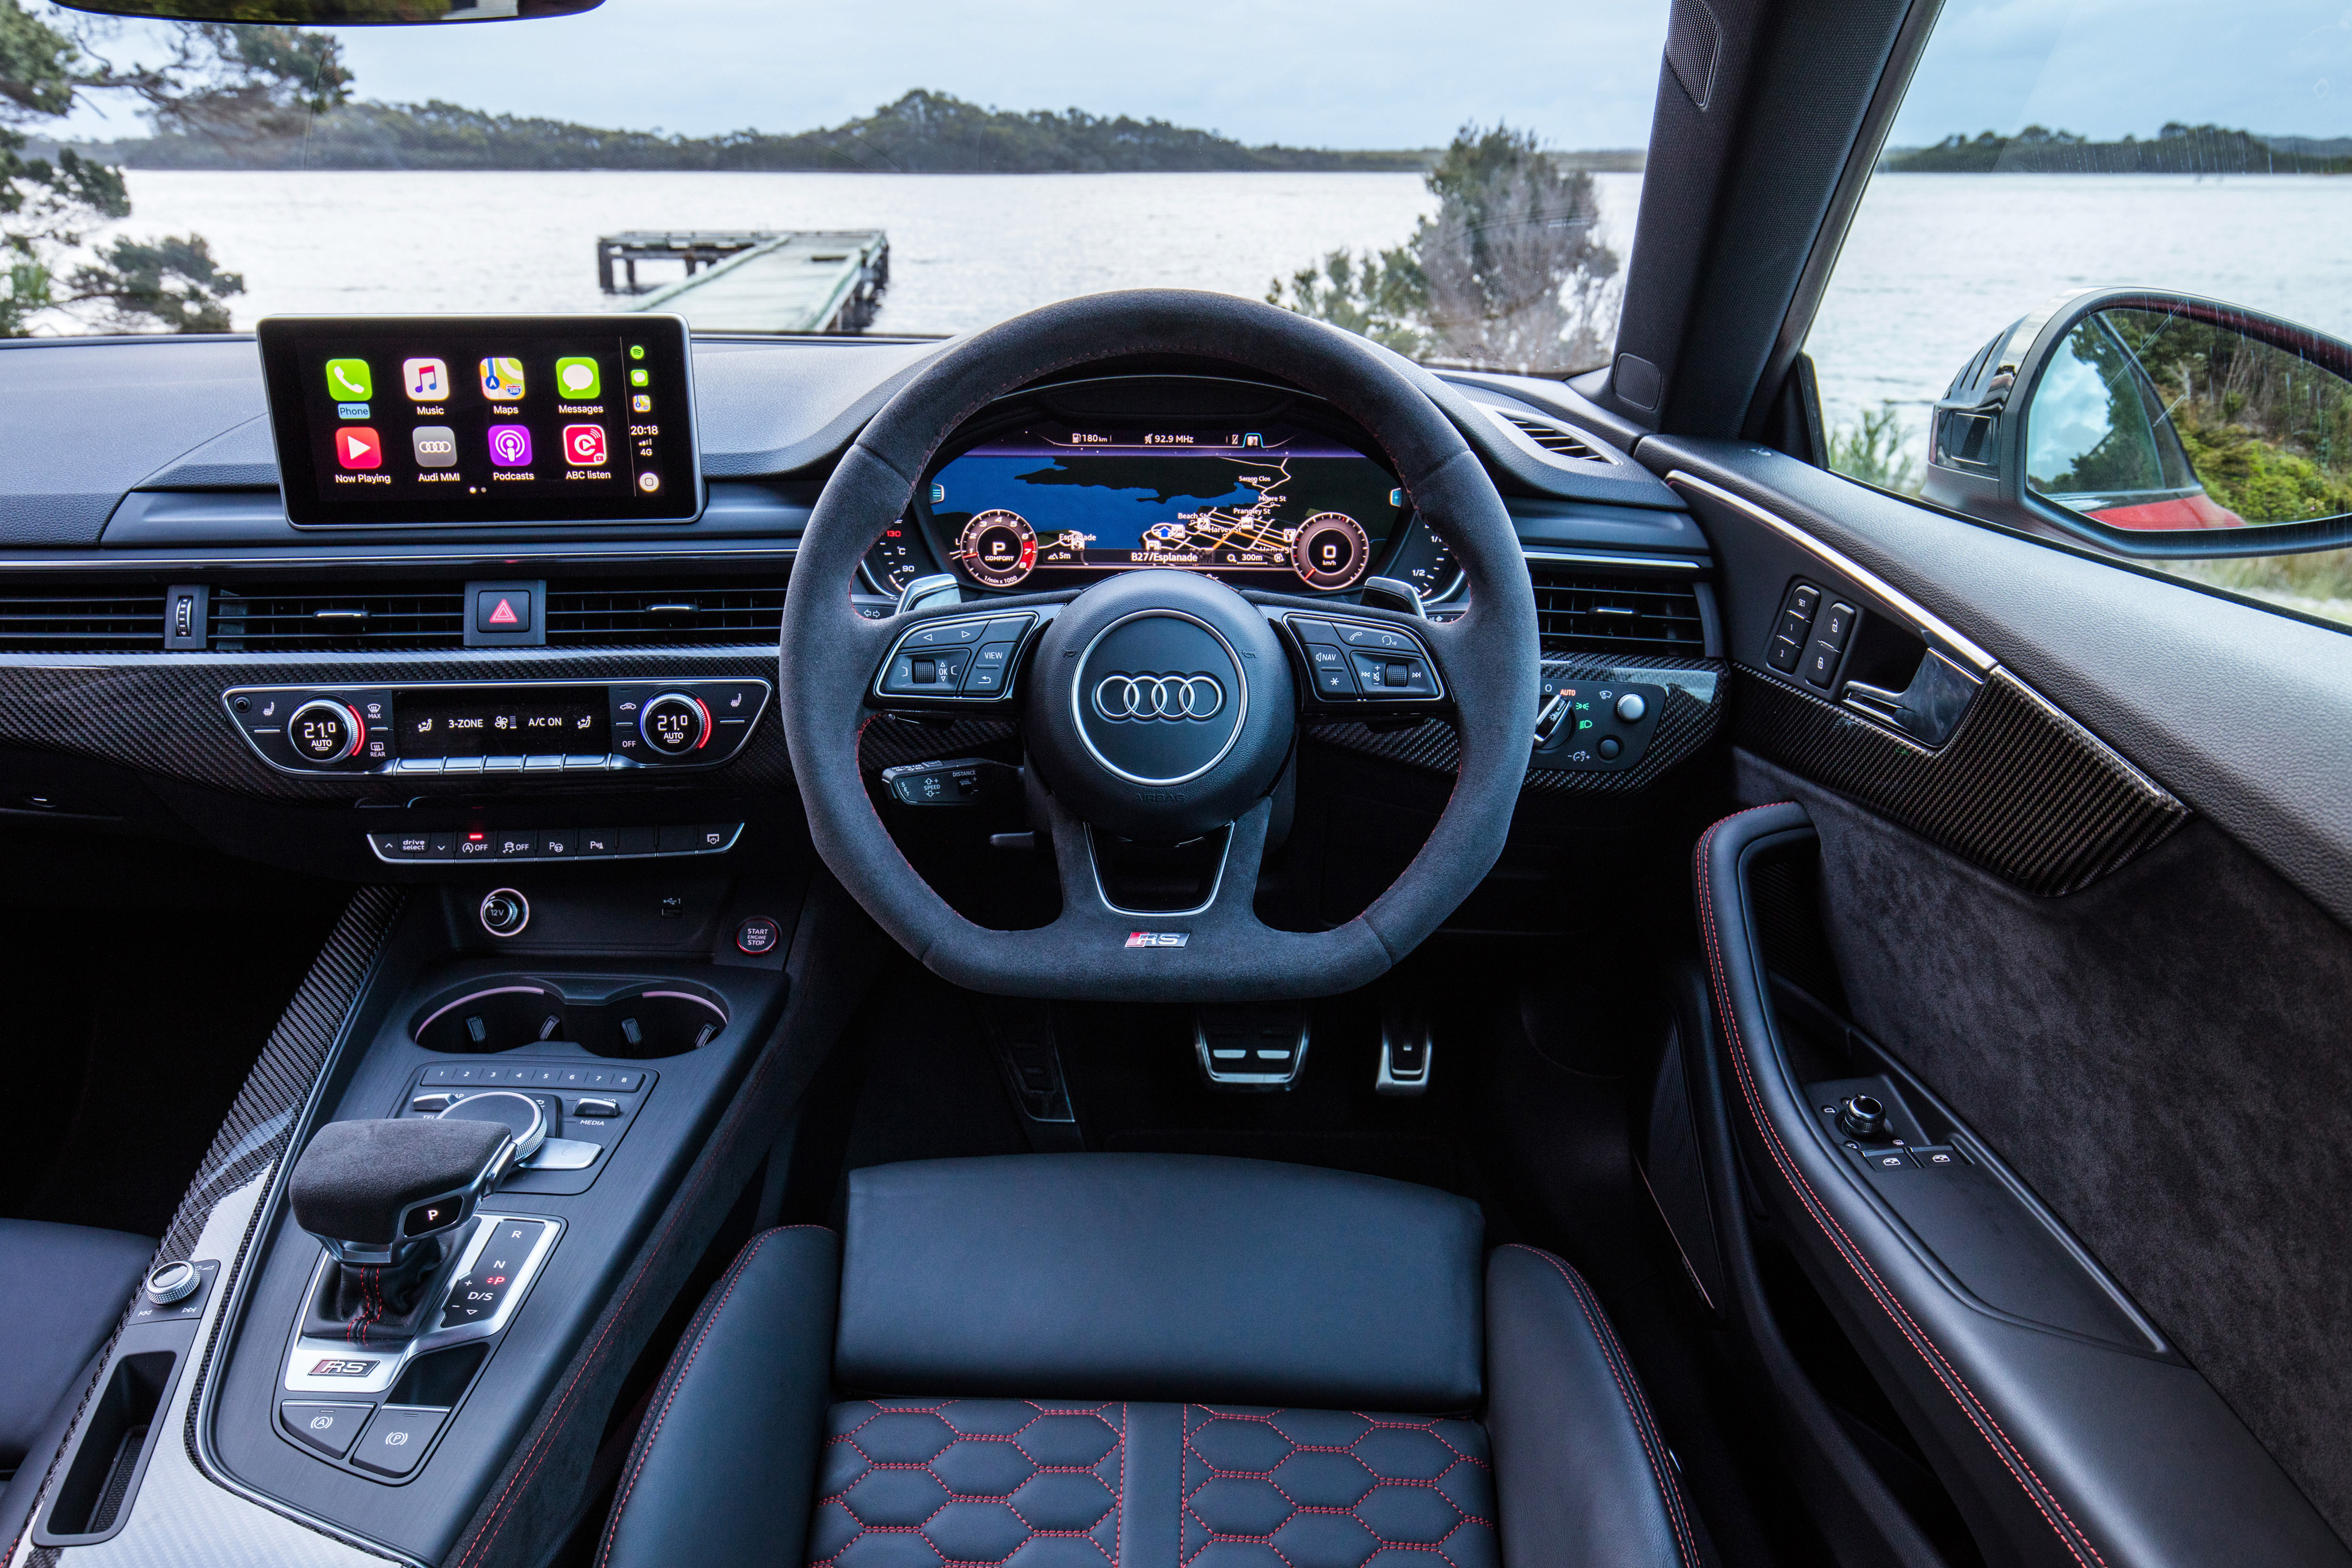 Audi Rs5 Coupe Interior 4k Hd Cars 4k Wallpapers Images Backgrounds Photos And Pictures